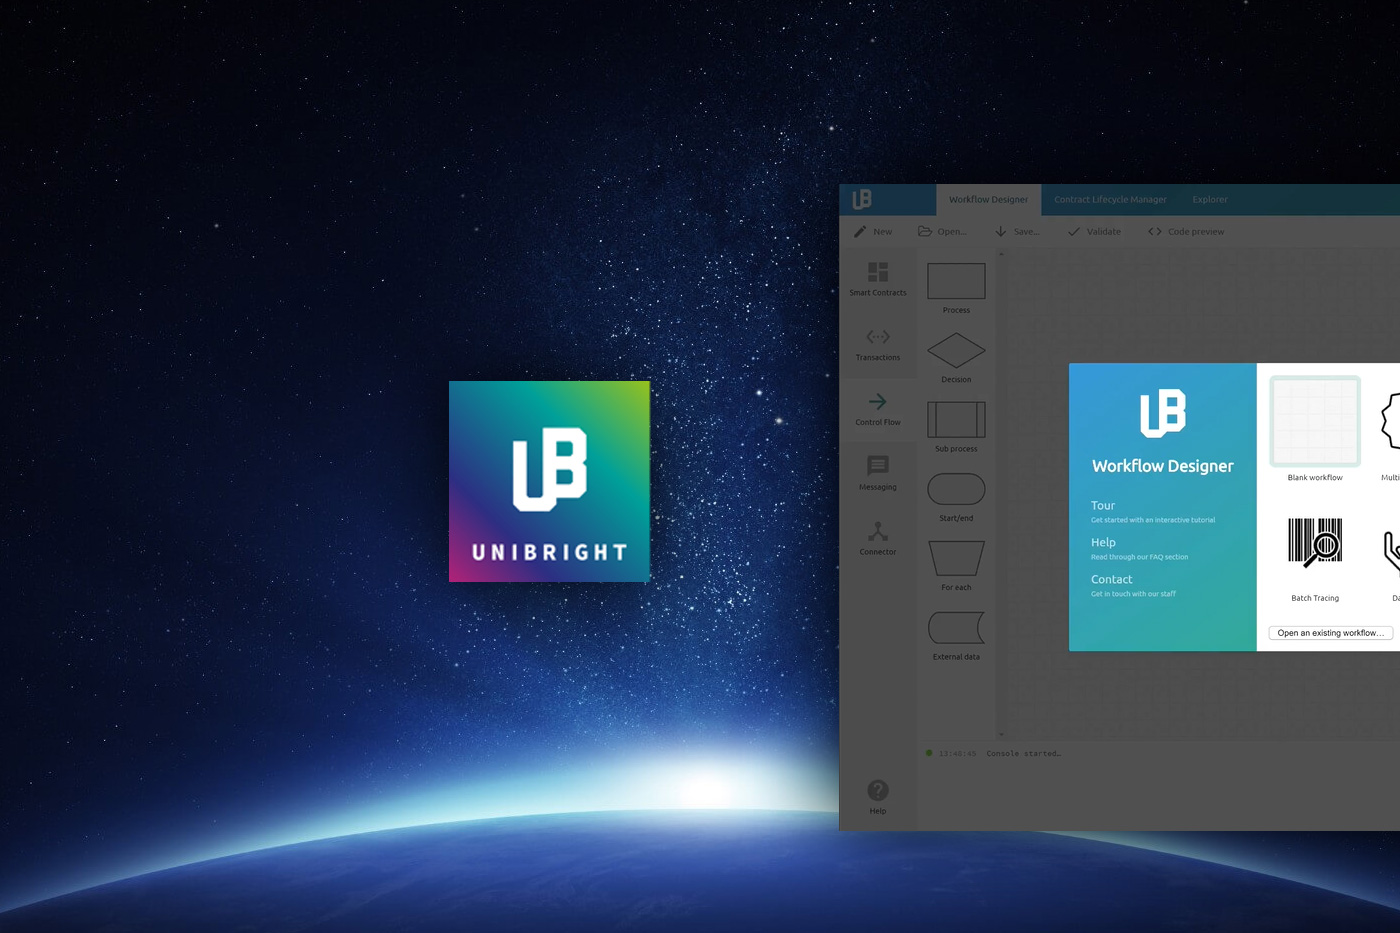 unibright-ico-a-unified-framework-for-blockchain-based-business-integration[1]